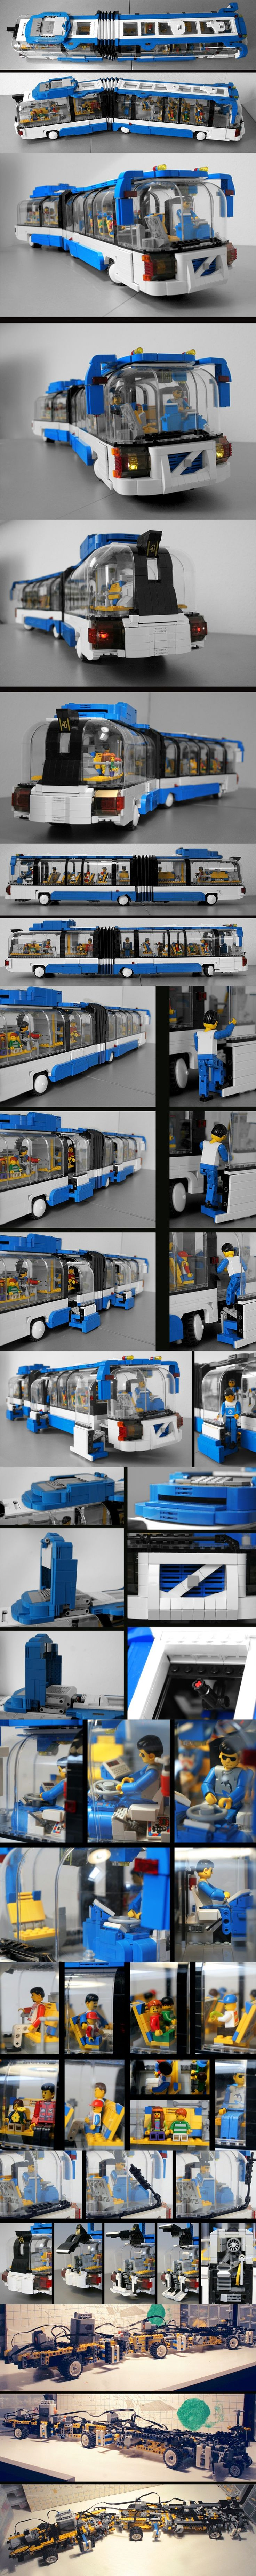 WOW! Volvo CAB - 87cm long and 18 studs wide #LEGO #Volvo